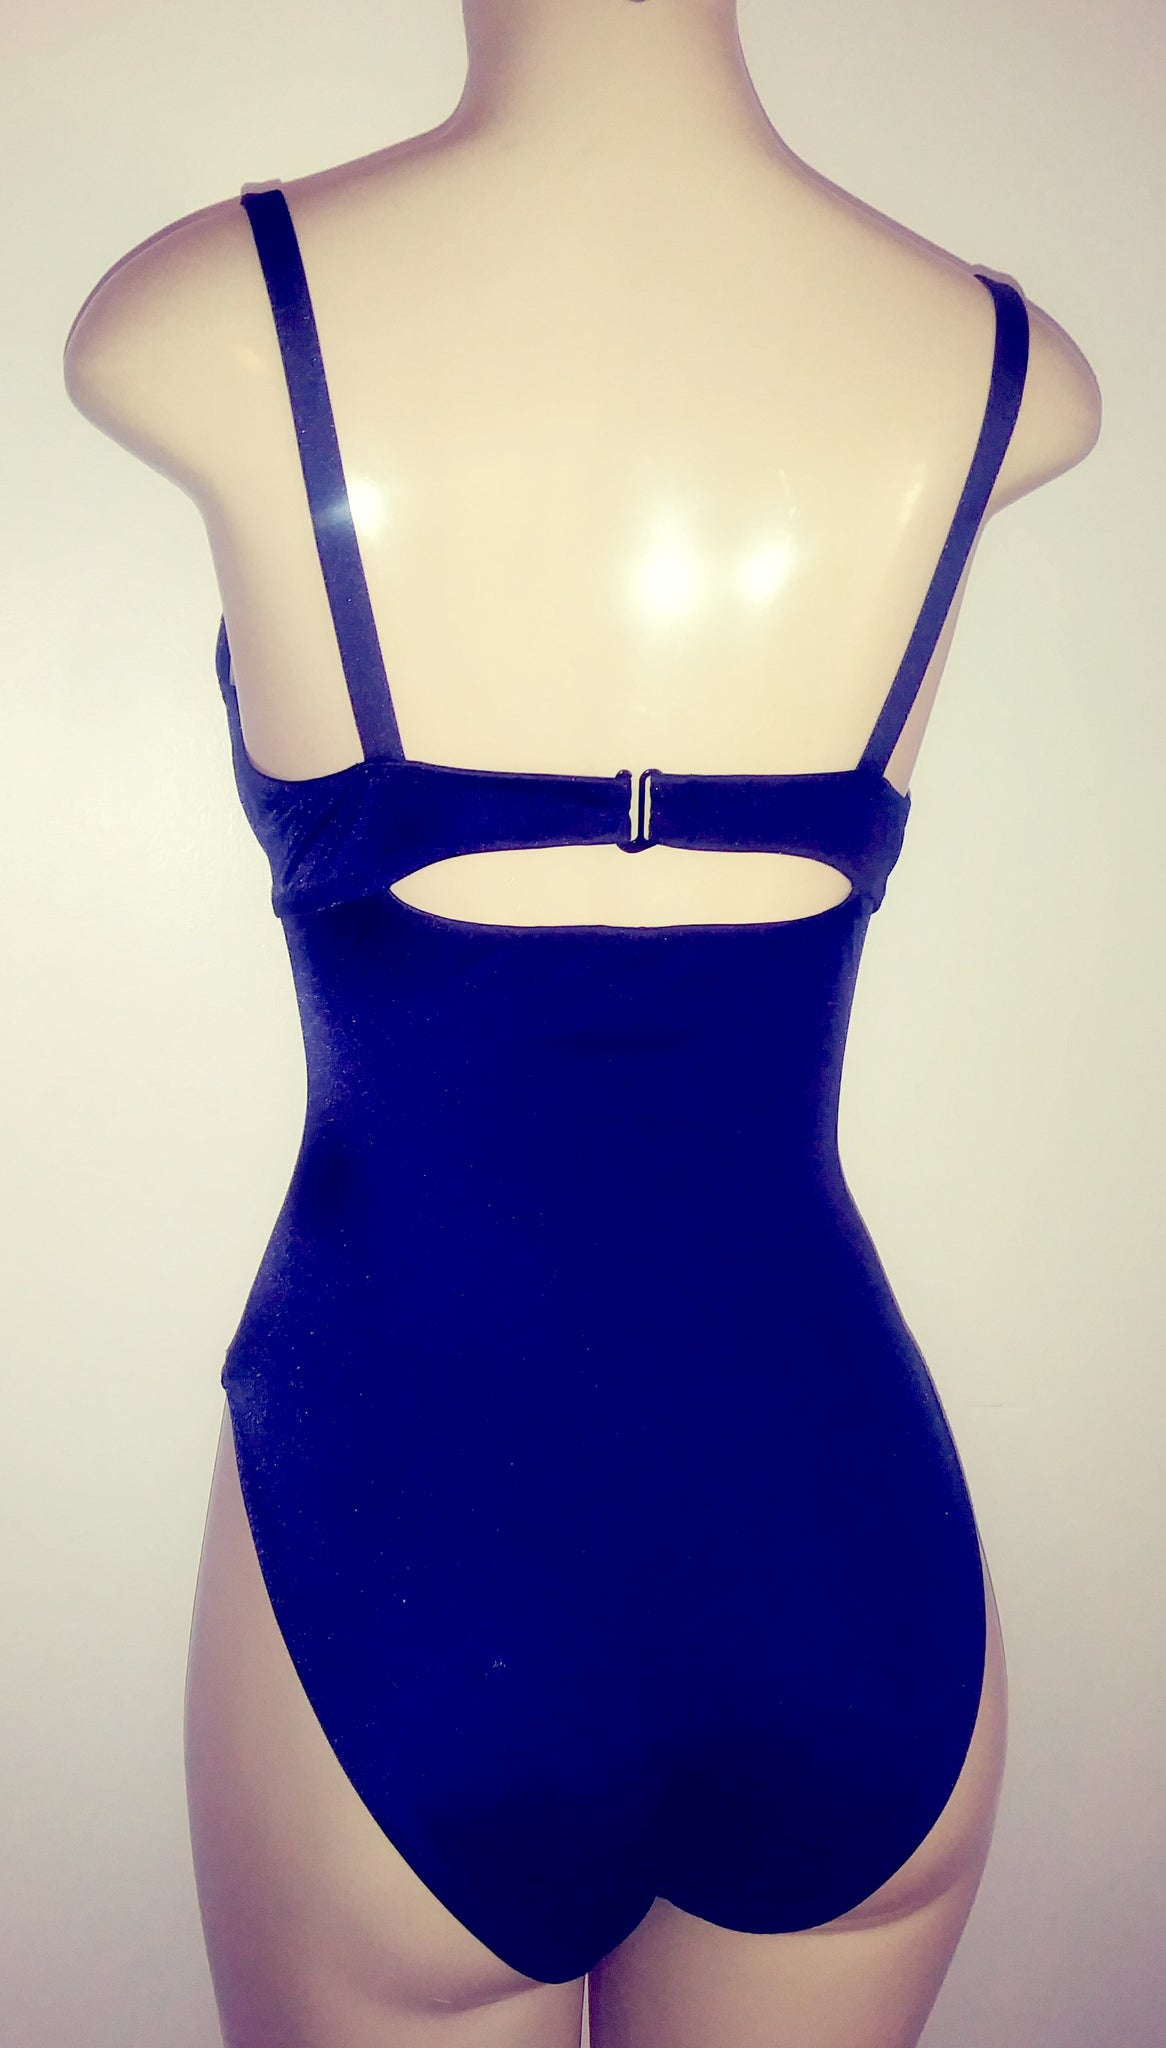 53a61955e5 ... High back one piece swimsuit with push up top; Underwire supportive  push up swimsuit